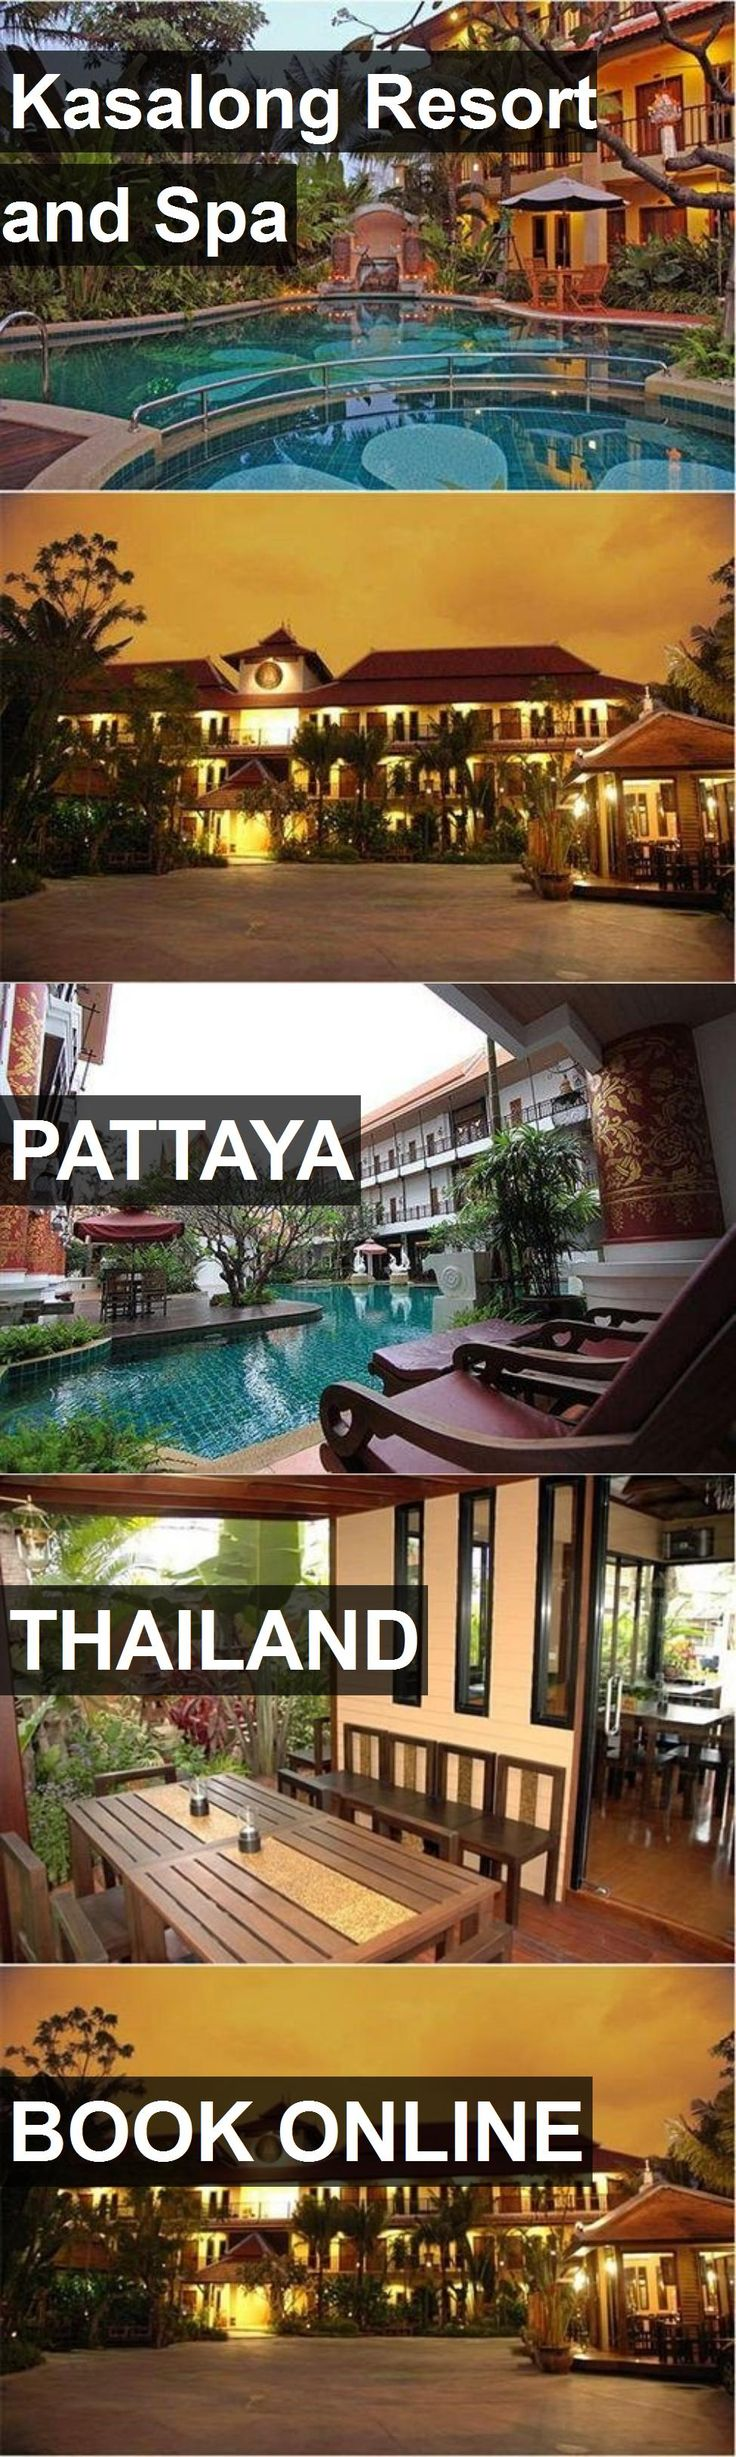 The 25+ best Pattaya thailand ideas on Pinterest | Pattaya ...